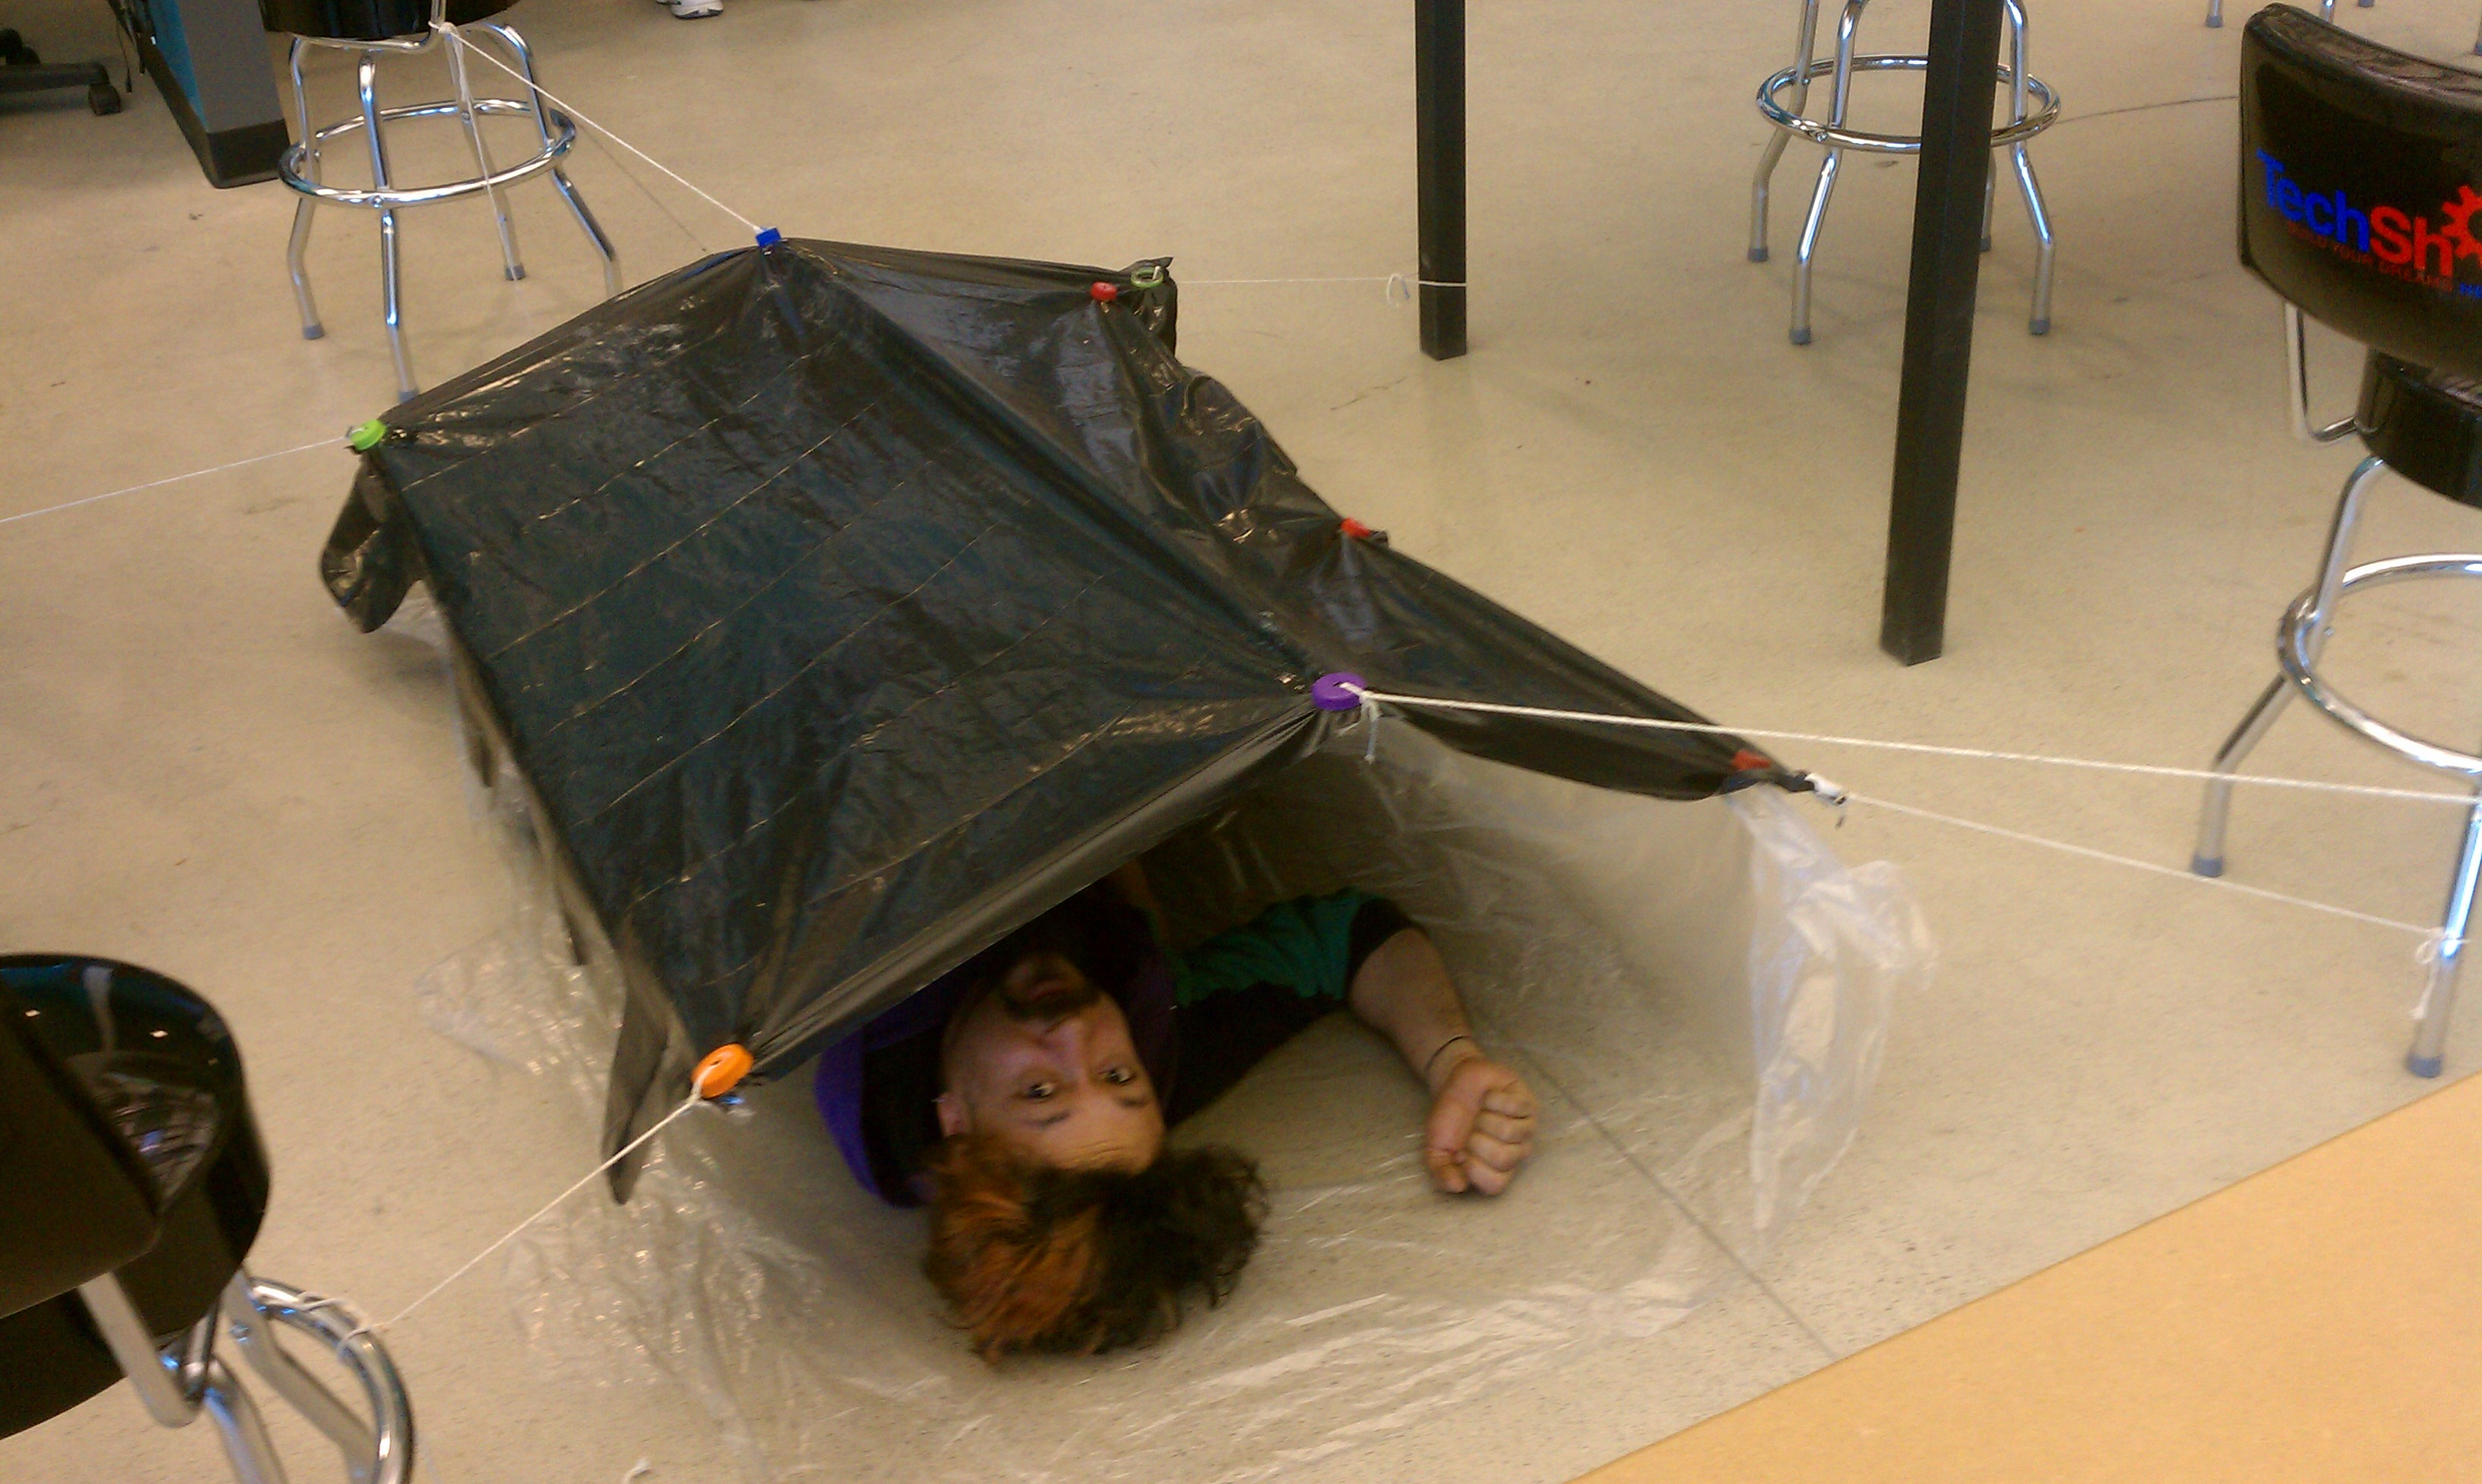 Ultra light tent for bike camping @TechShop